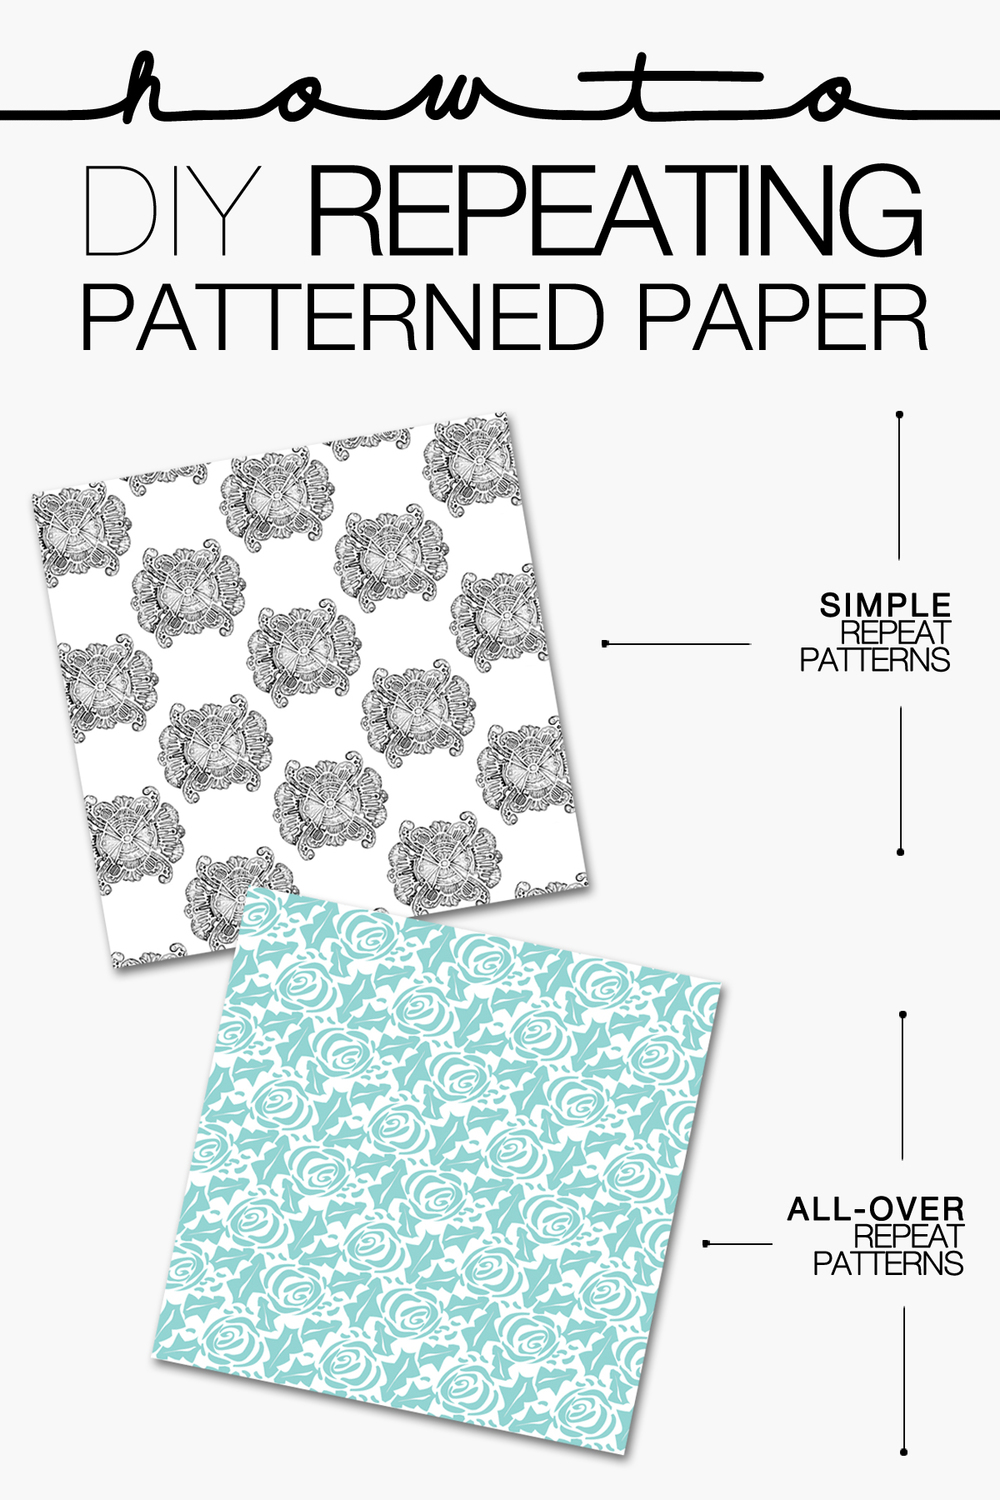 HOW TO | CREATE YOUR OWN REPEATING PATTERNED PAPER | THE PAPER CURATOR